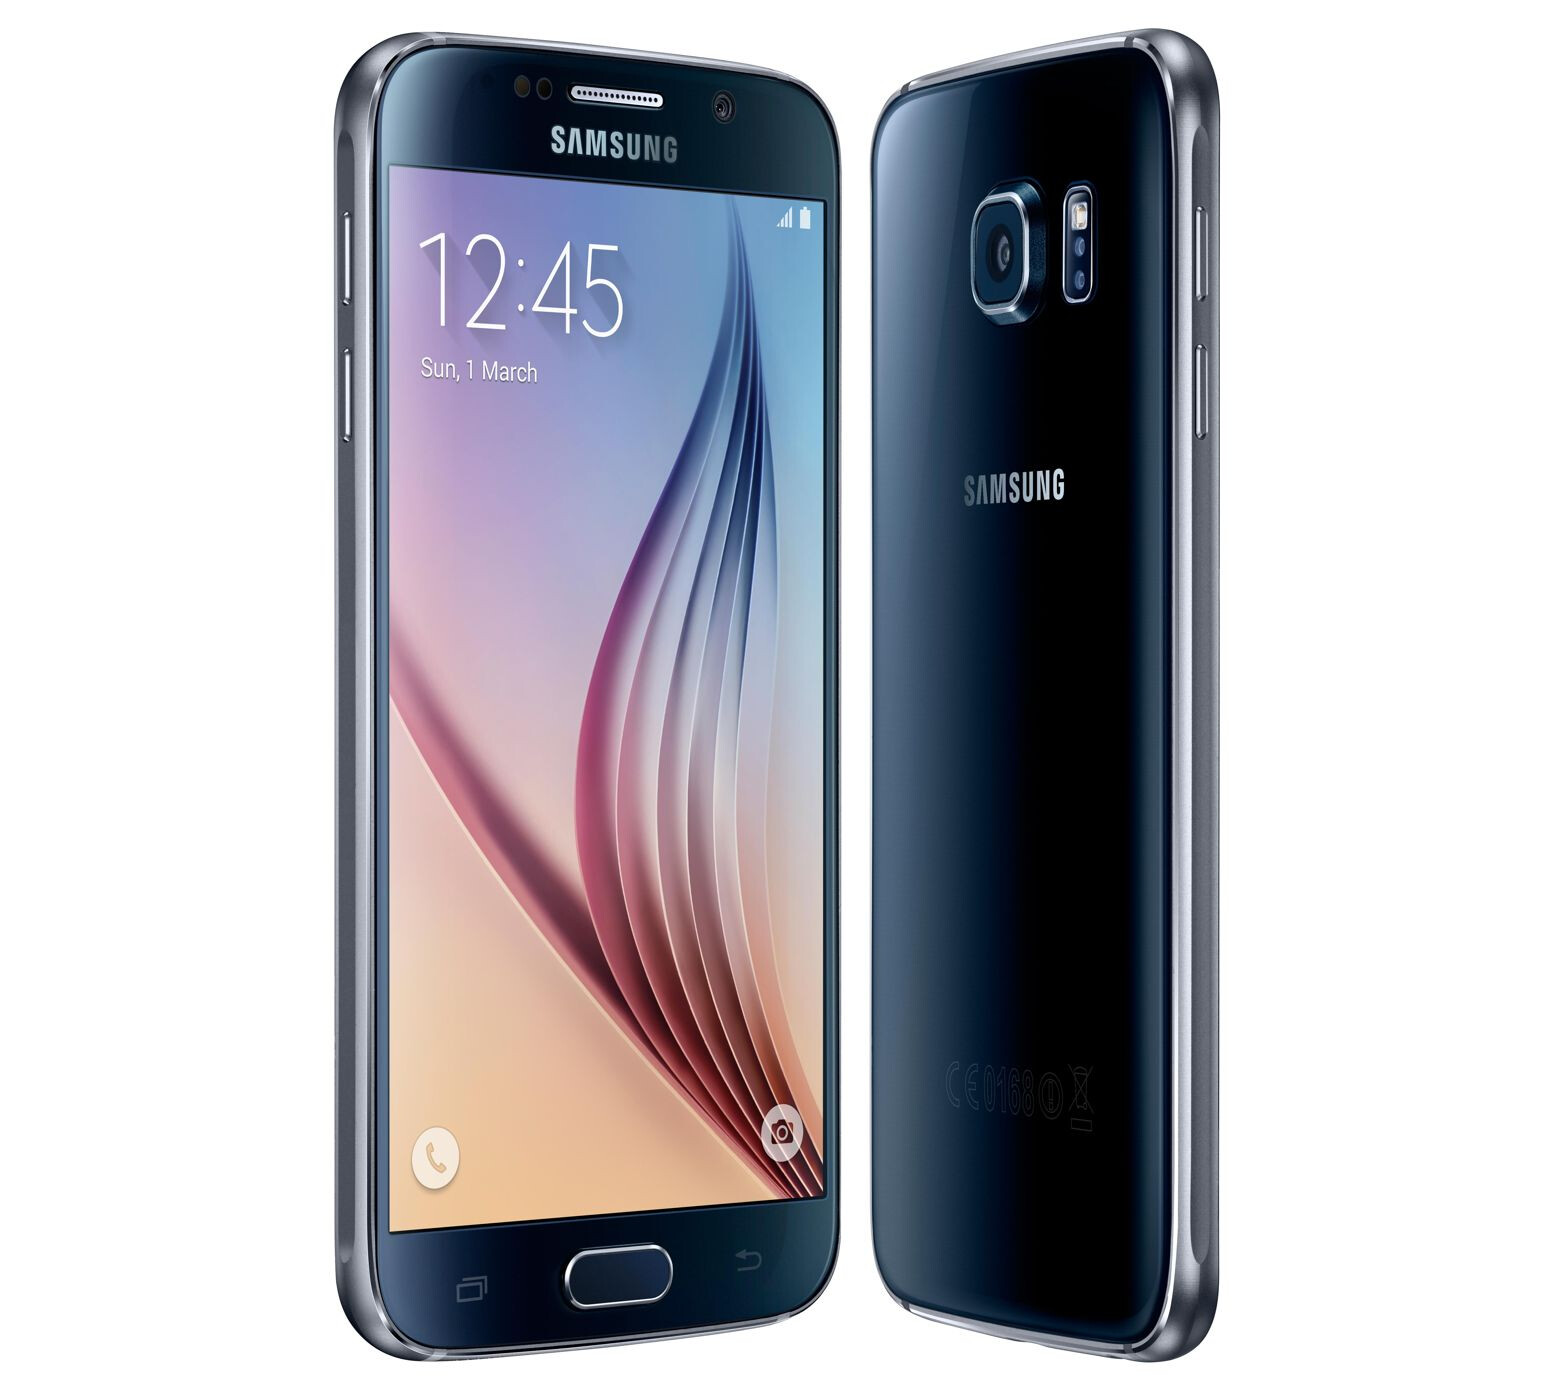 See all the Samsung Galaxy S6 and S6 edge color variants here - which one do you like best?